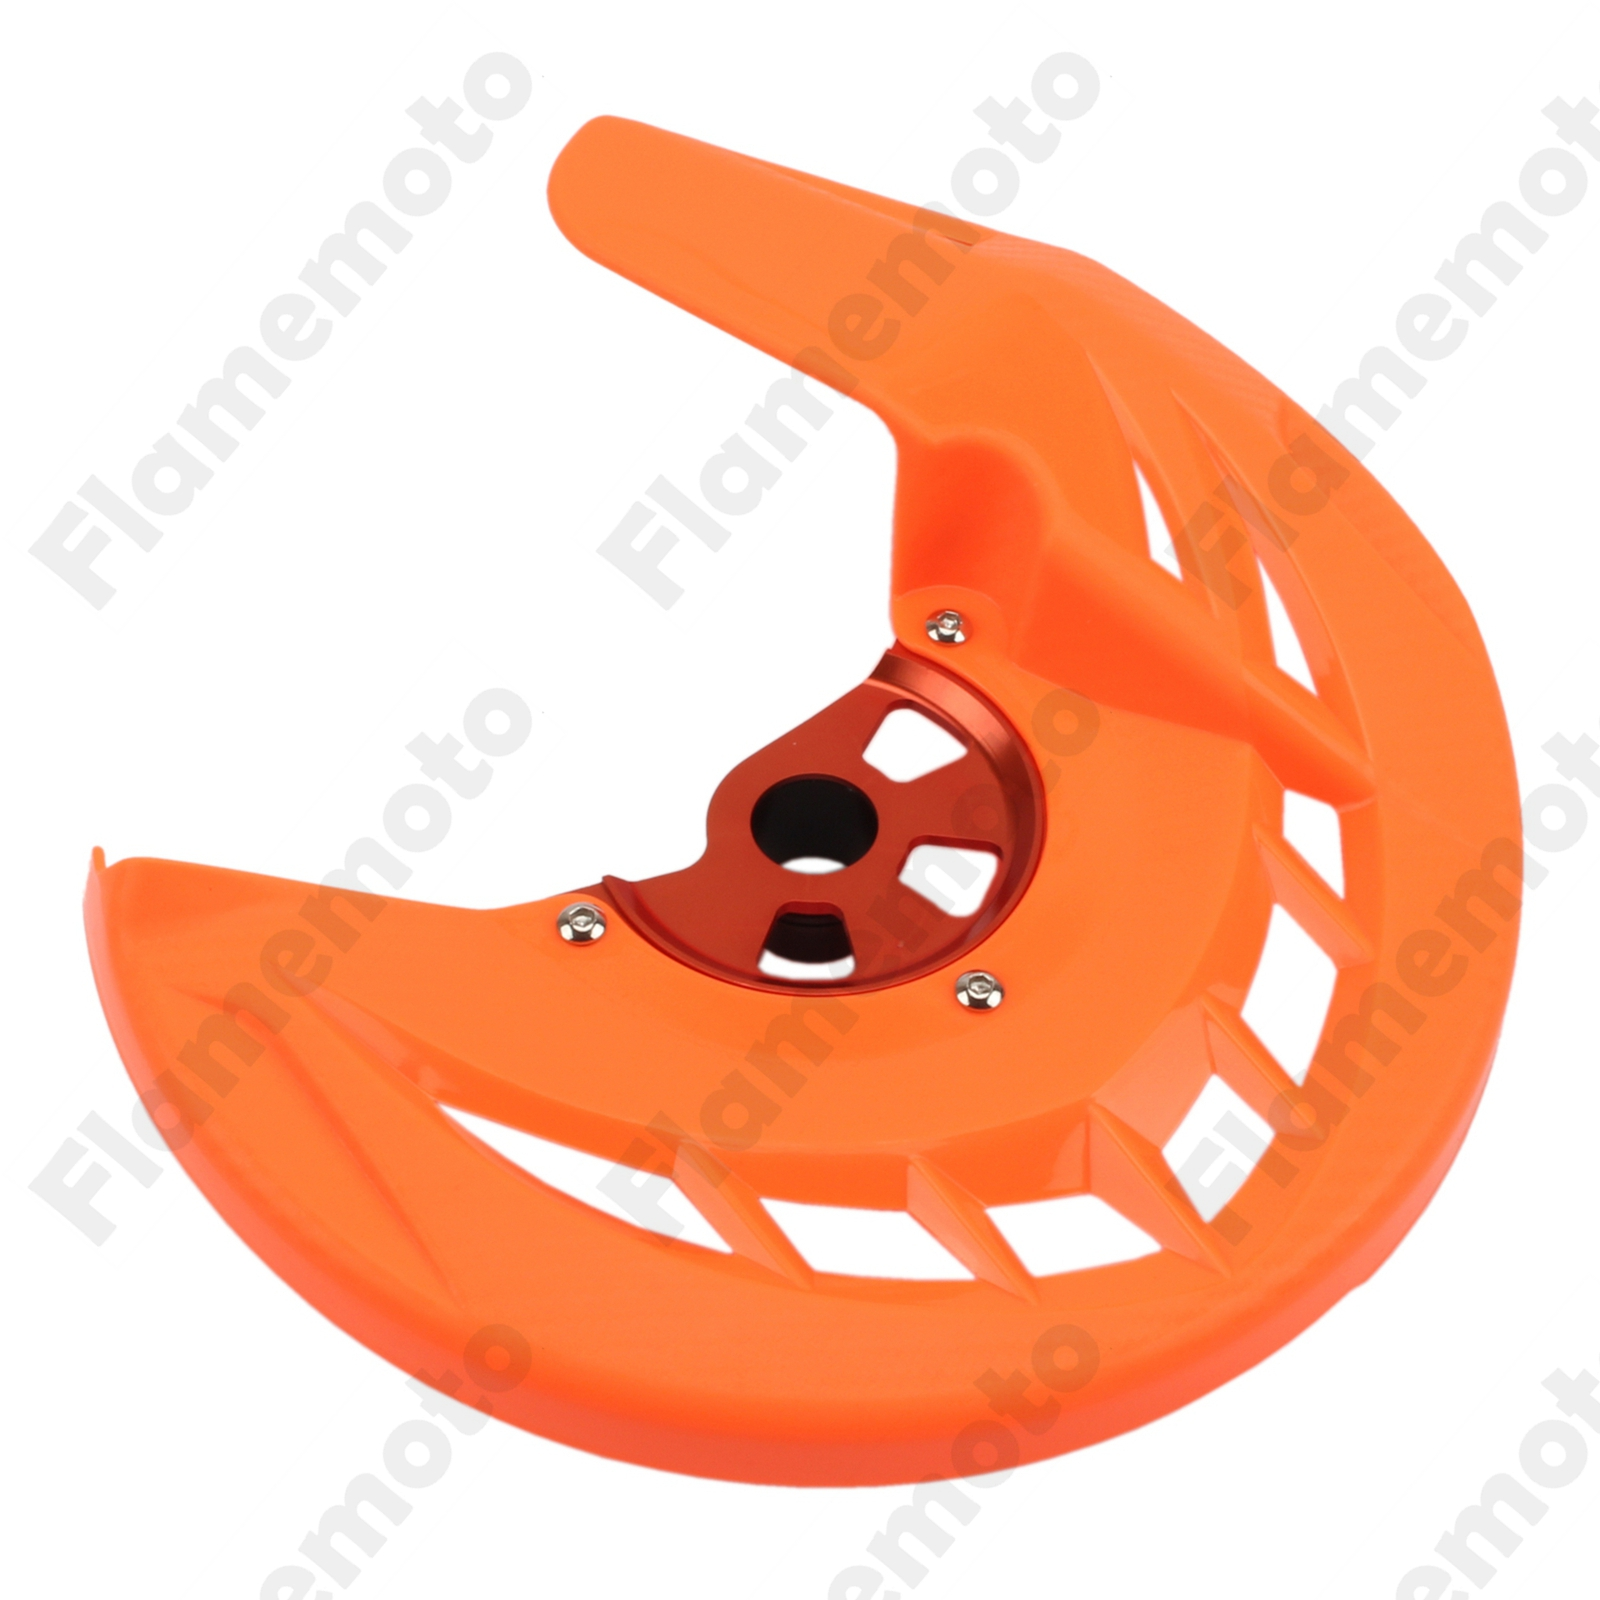 Orange Motorcycle Accessories Front Brake Disc Guard Cover For 2003 2004 2005 2006-2013 2014 2015 KTM 125-530 300 350 EXC EXC-F free shipping aluminium wave motorcycle accessories front brake disc rotor disk for ktm 125 200 390 duke 2013 2014